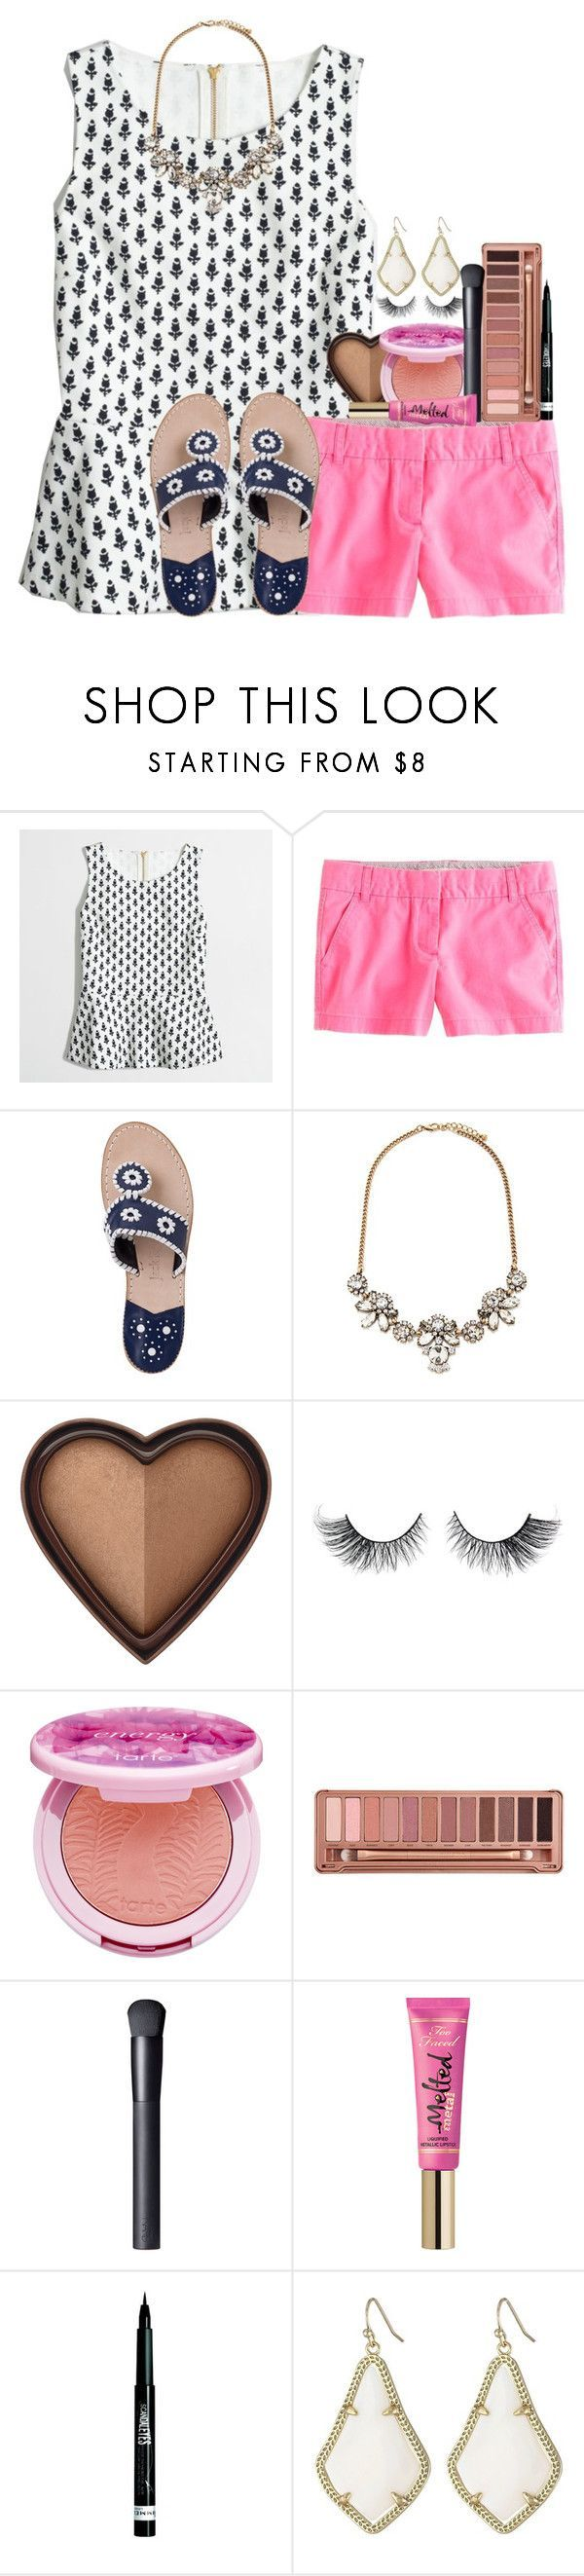 bid day in the polyvore sorority by thefashionbyem  liked on Polyvore featuring JCrew Jack Rogers Forever 21 Too Faced Cosmetics tarte Urba  My Polyvore Finds